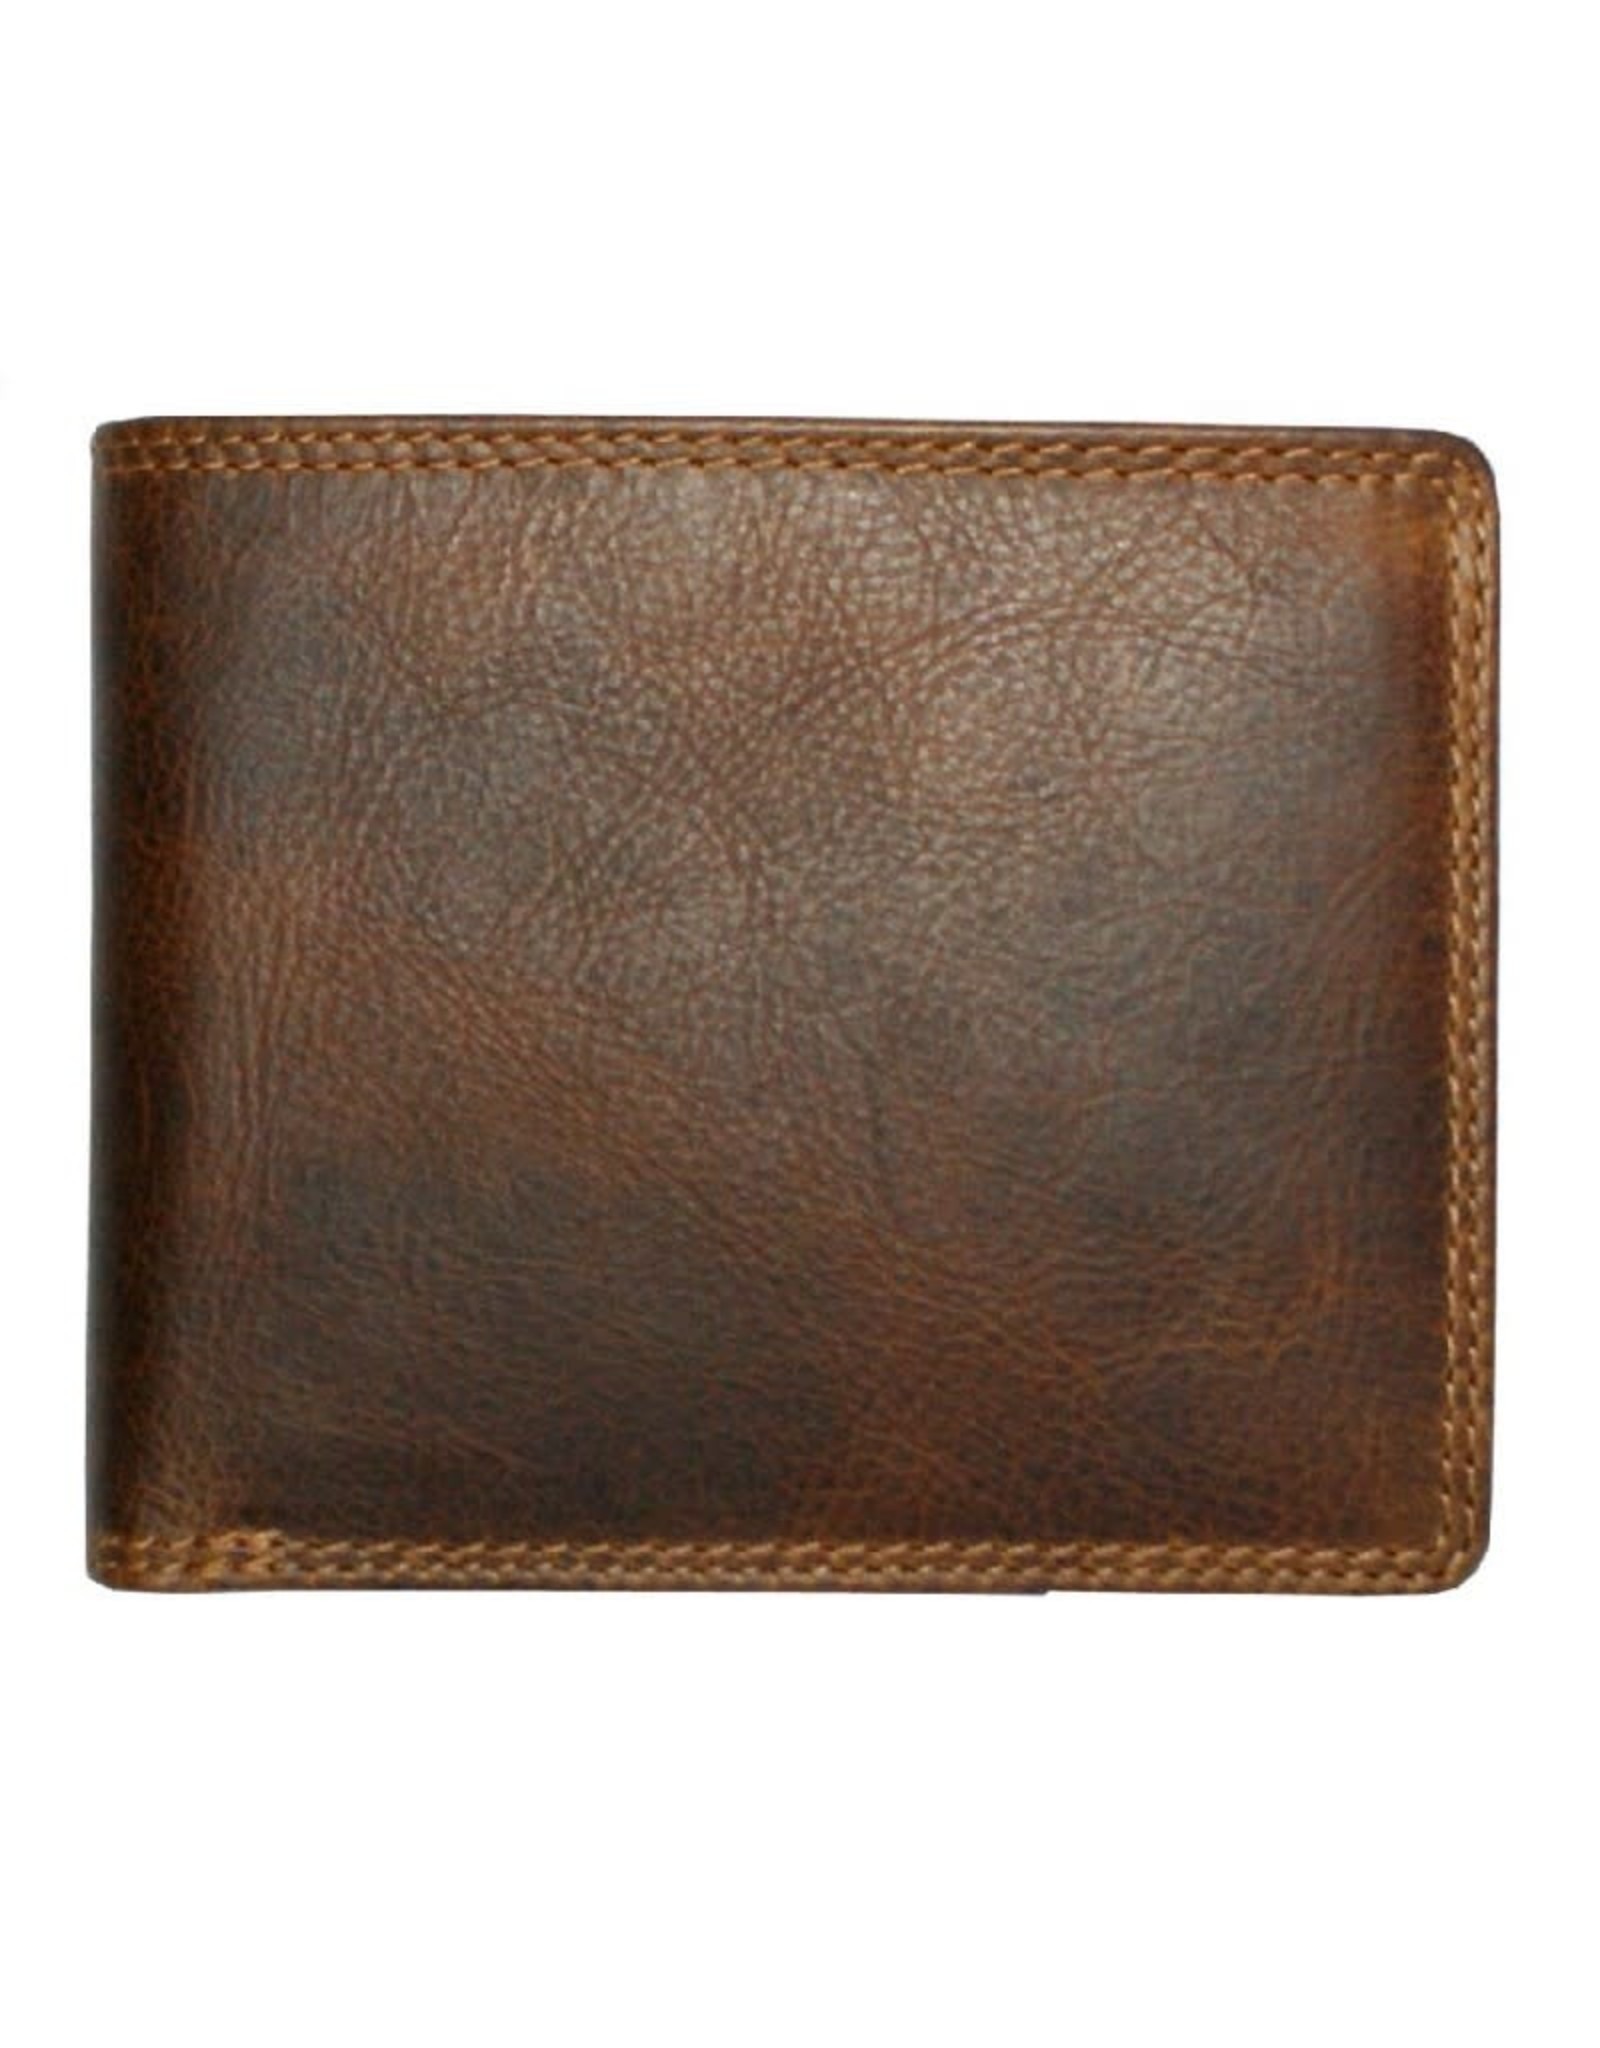 """Rugged Earth Rugged Earth 990008 Wallet Brown W4 3/4""""*H4""""*D3/4"""""""